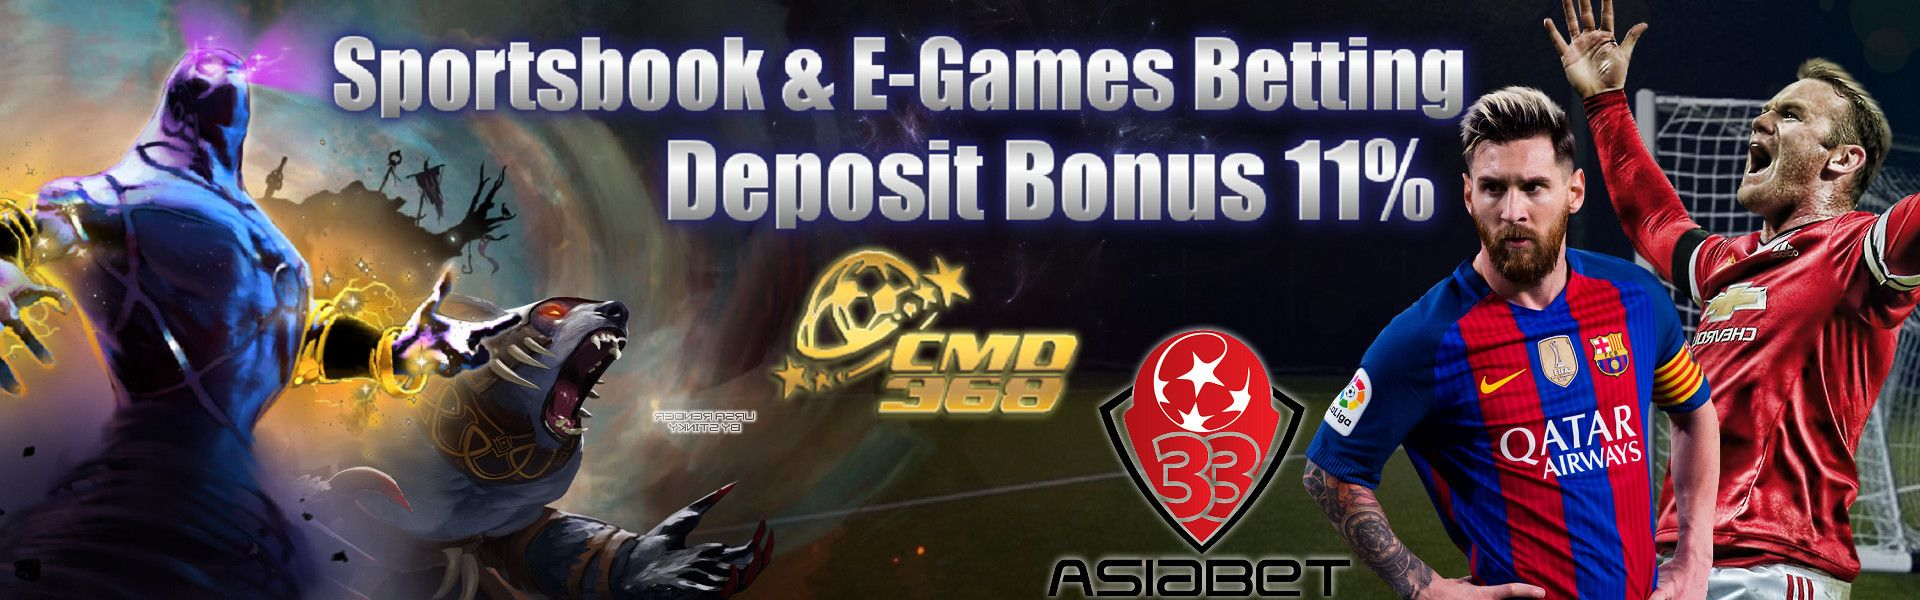 Asiabet33 is one of the most consistent and well